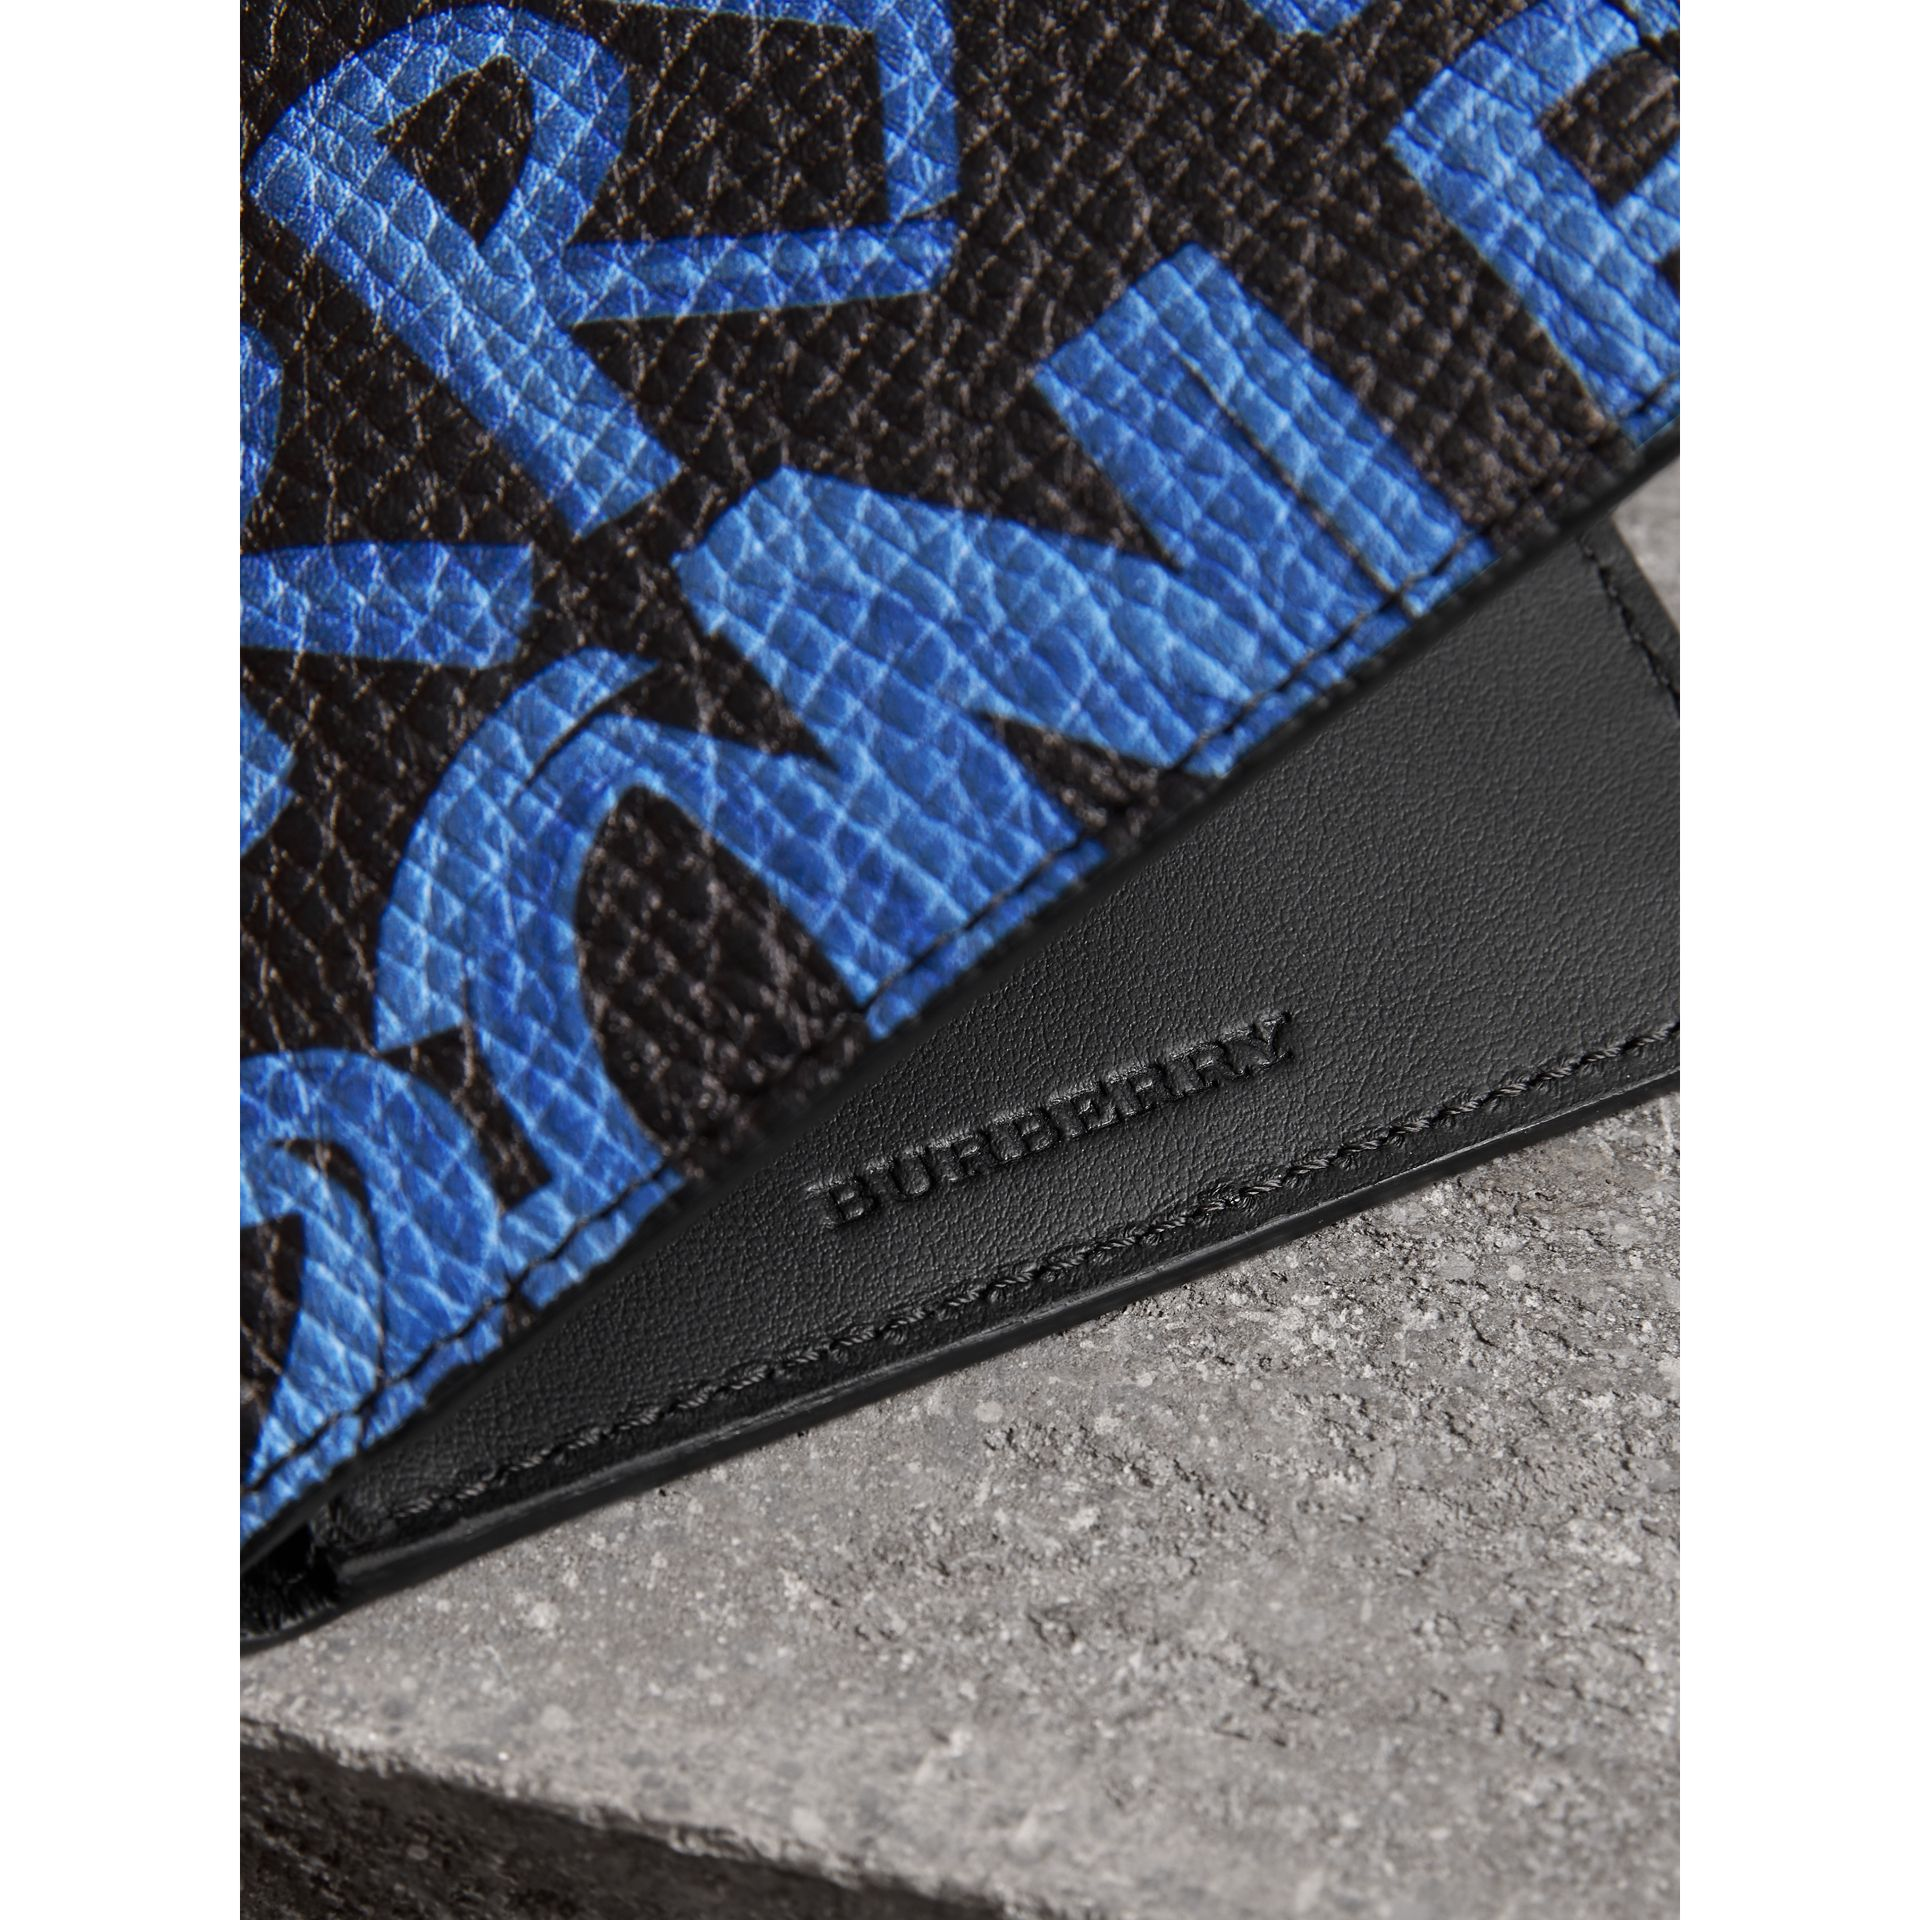 Graffiti Print Leather International Bifold Wallet in Blue/black - Men | Burberry United Kingdom - gallery image 1